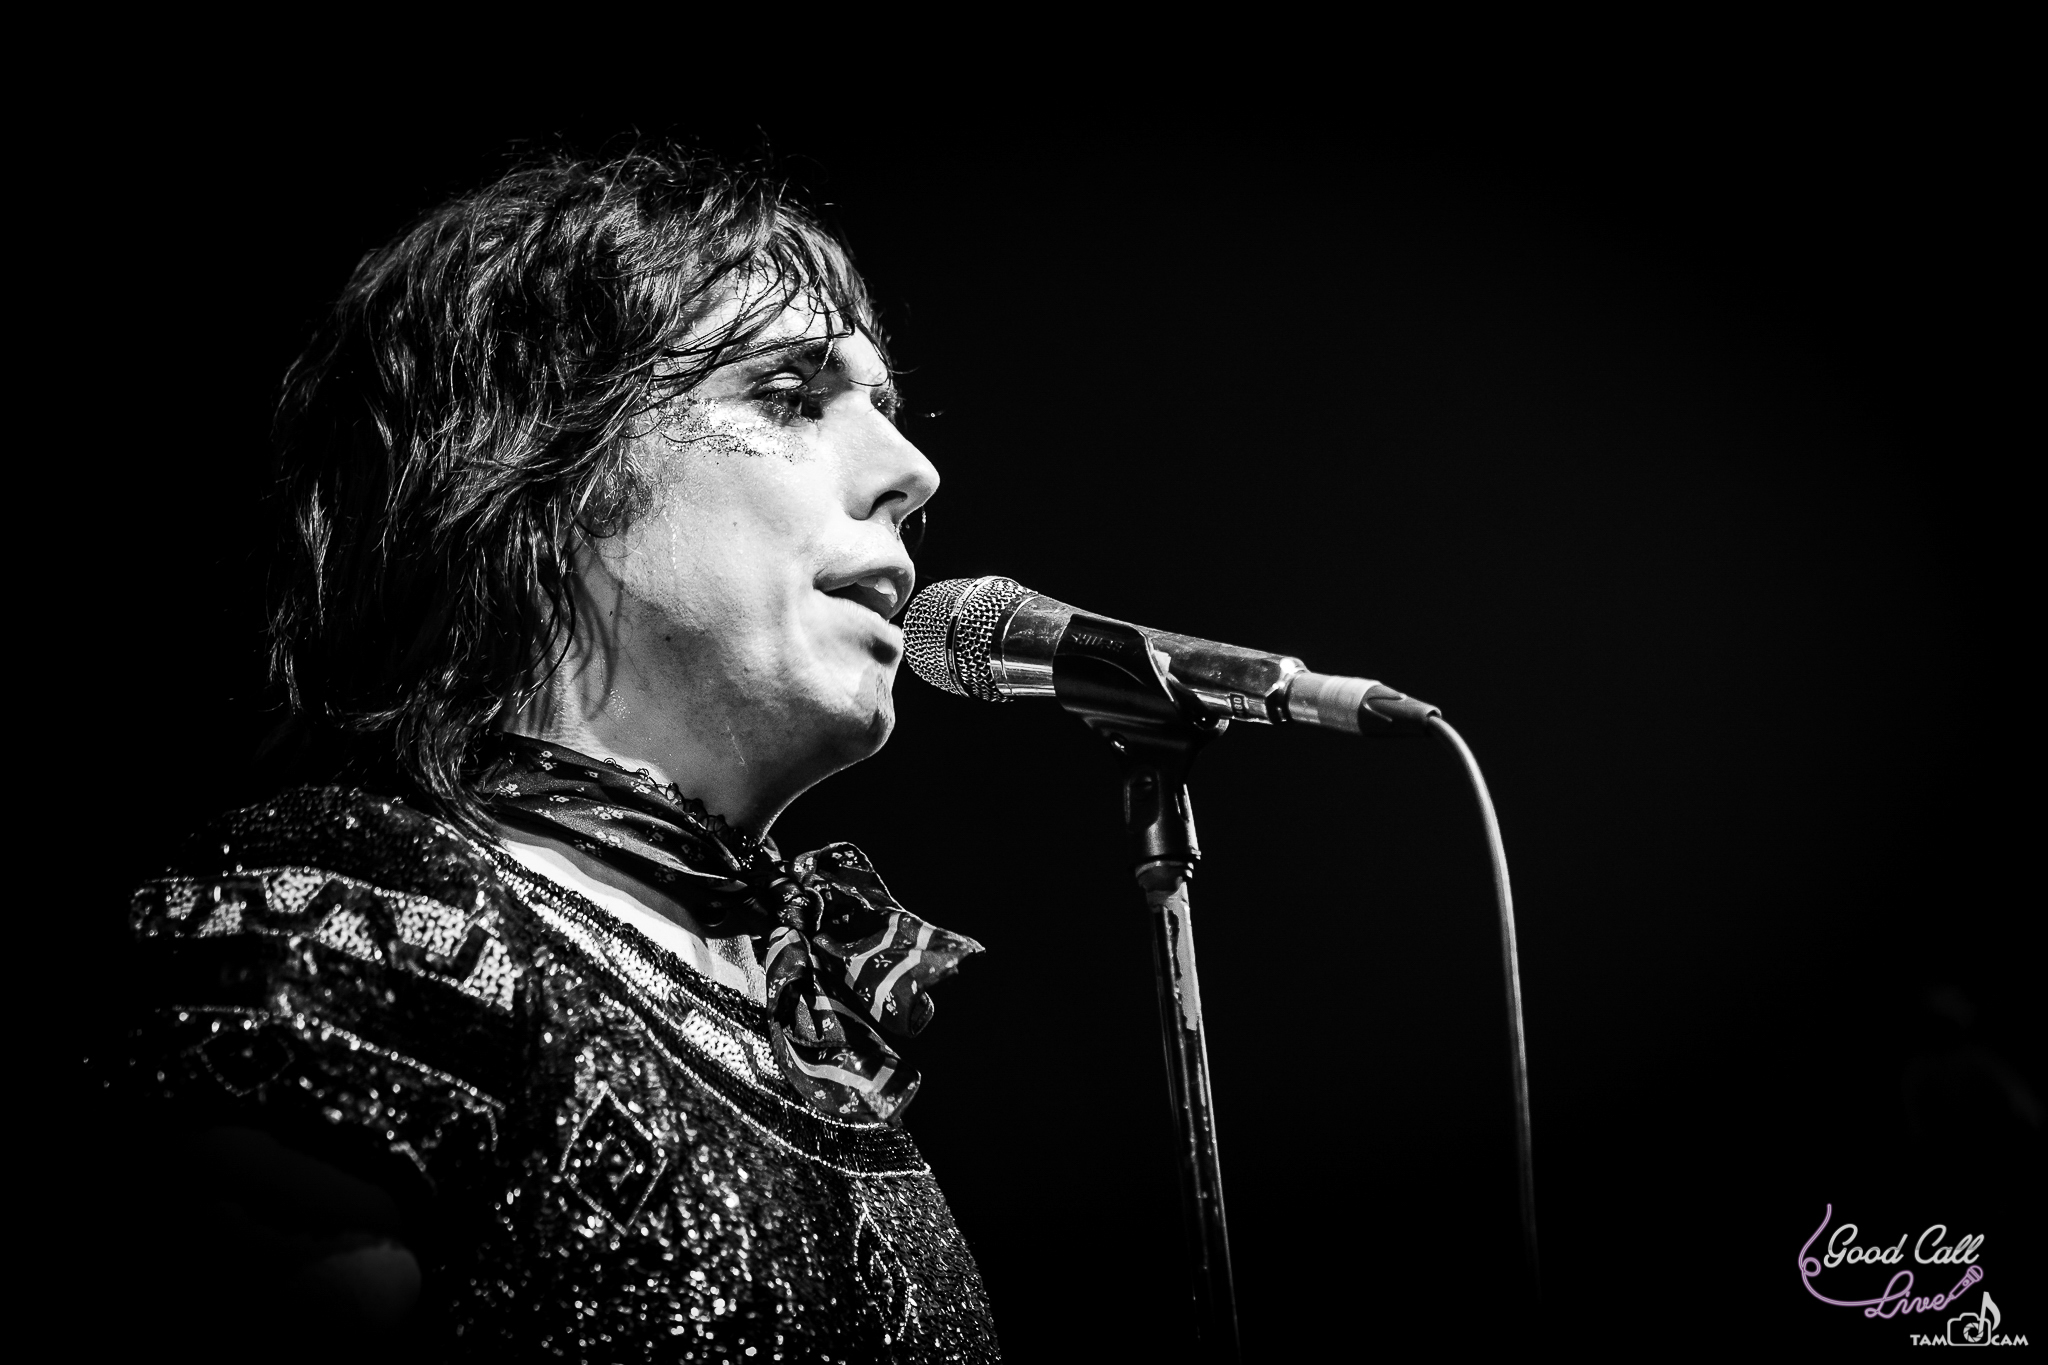 GIG REVIEW: The Struts + Support, The Triffid, Brisbane, 27